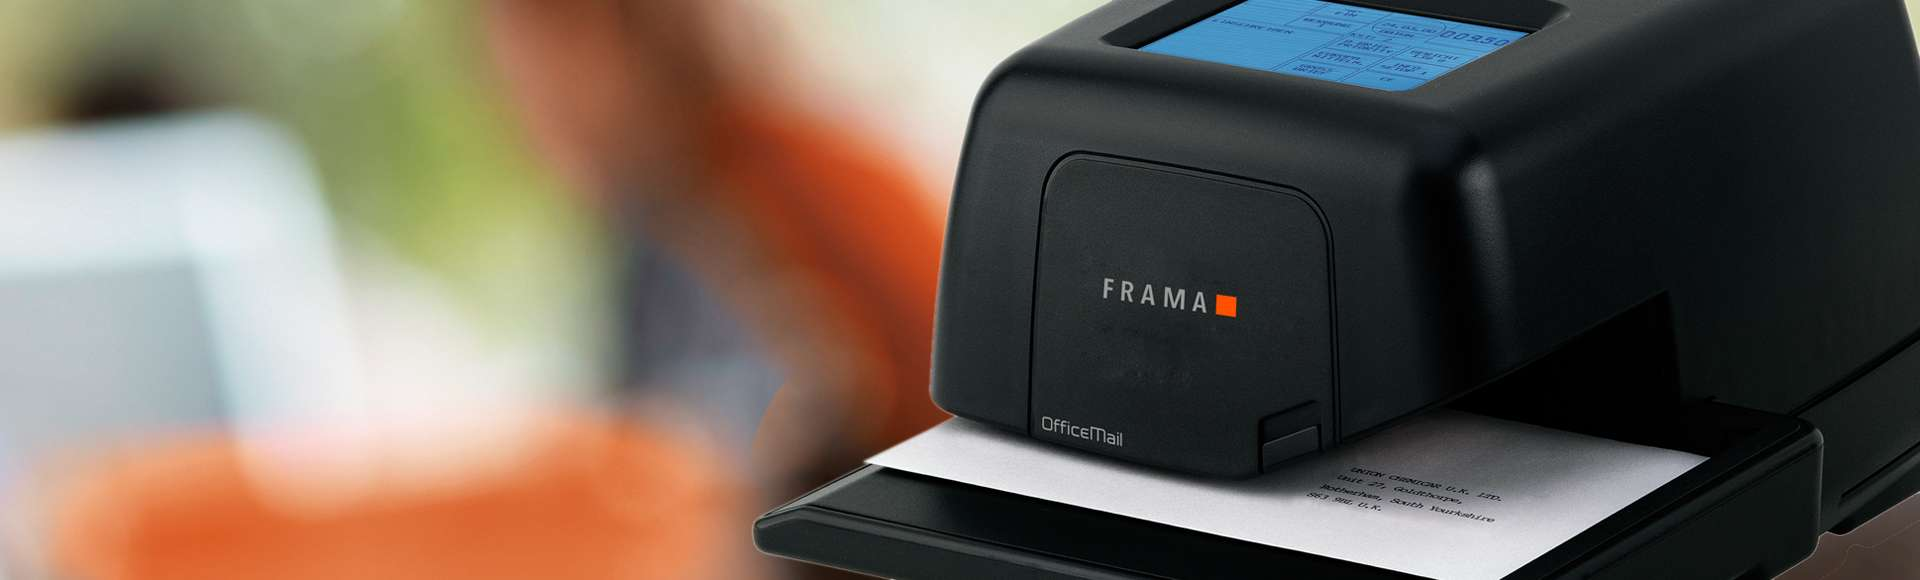 Frama PTY has a range of products from franking machines to letter openers.